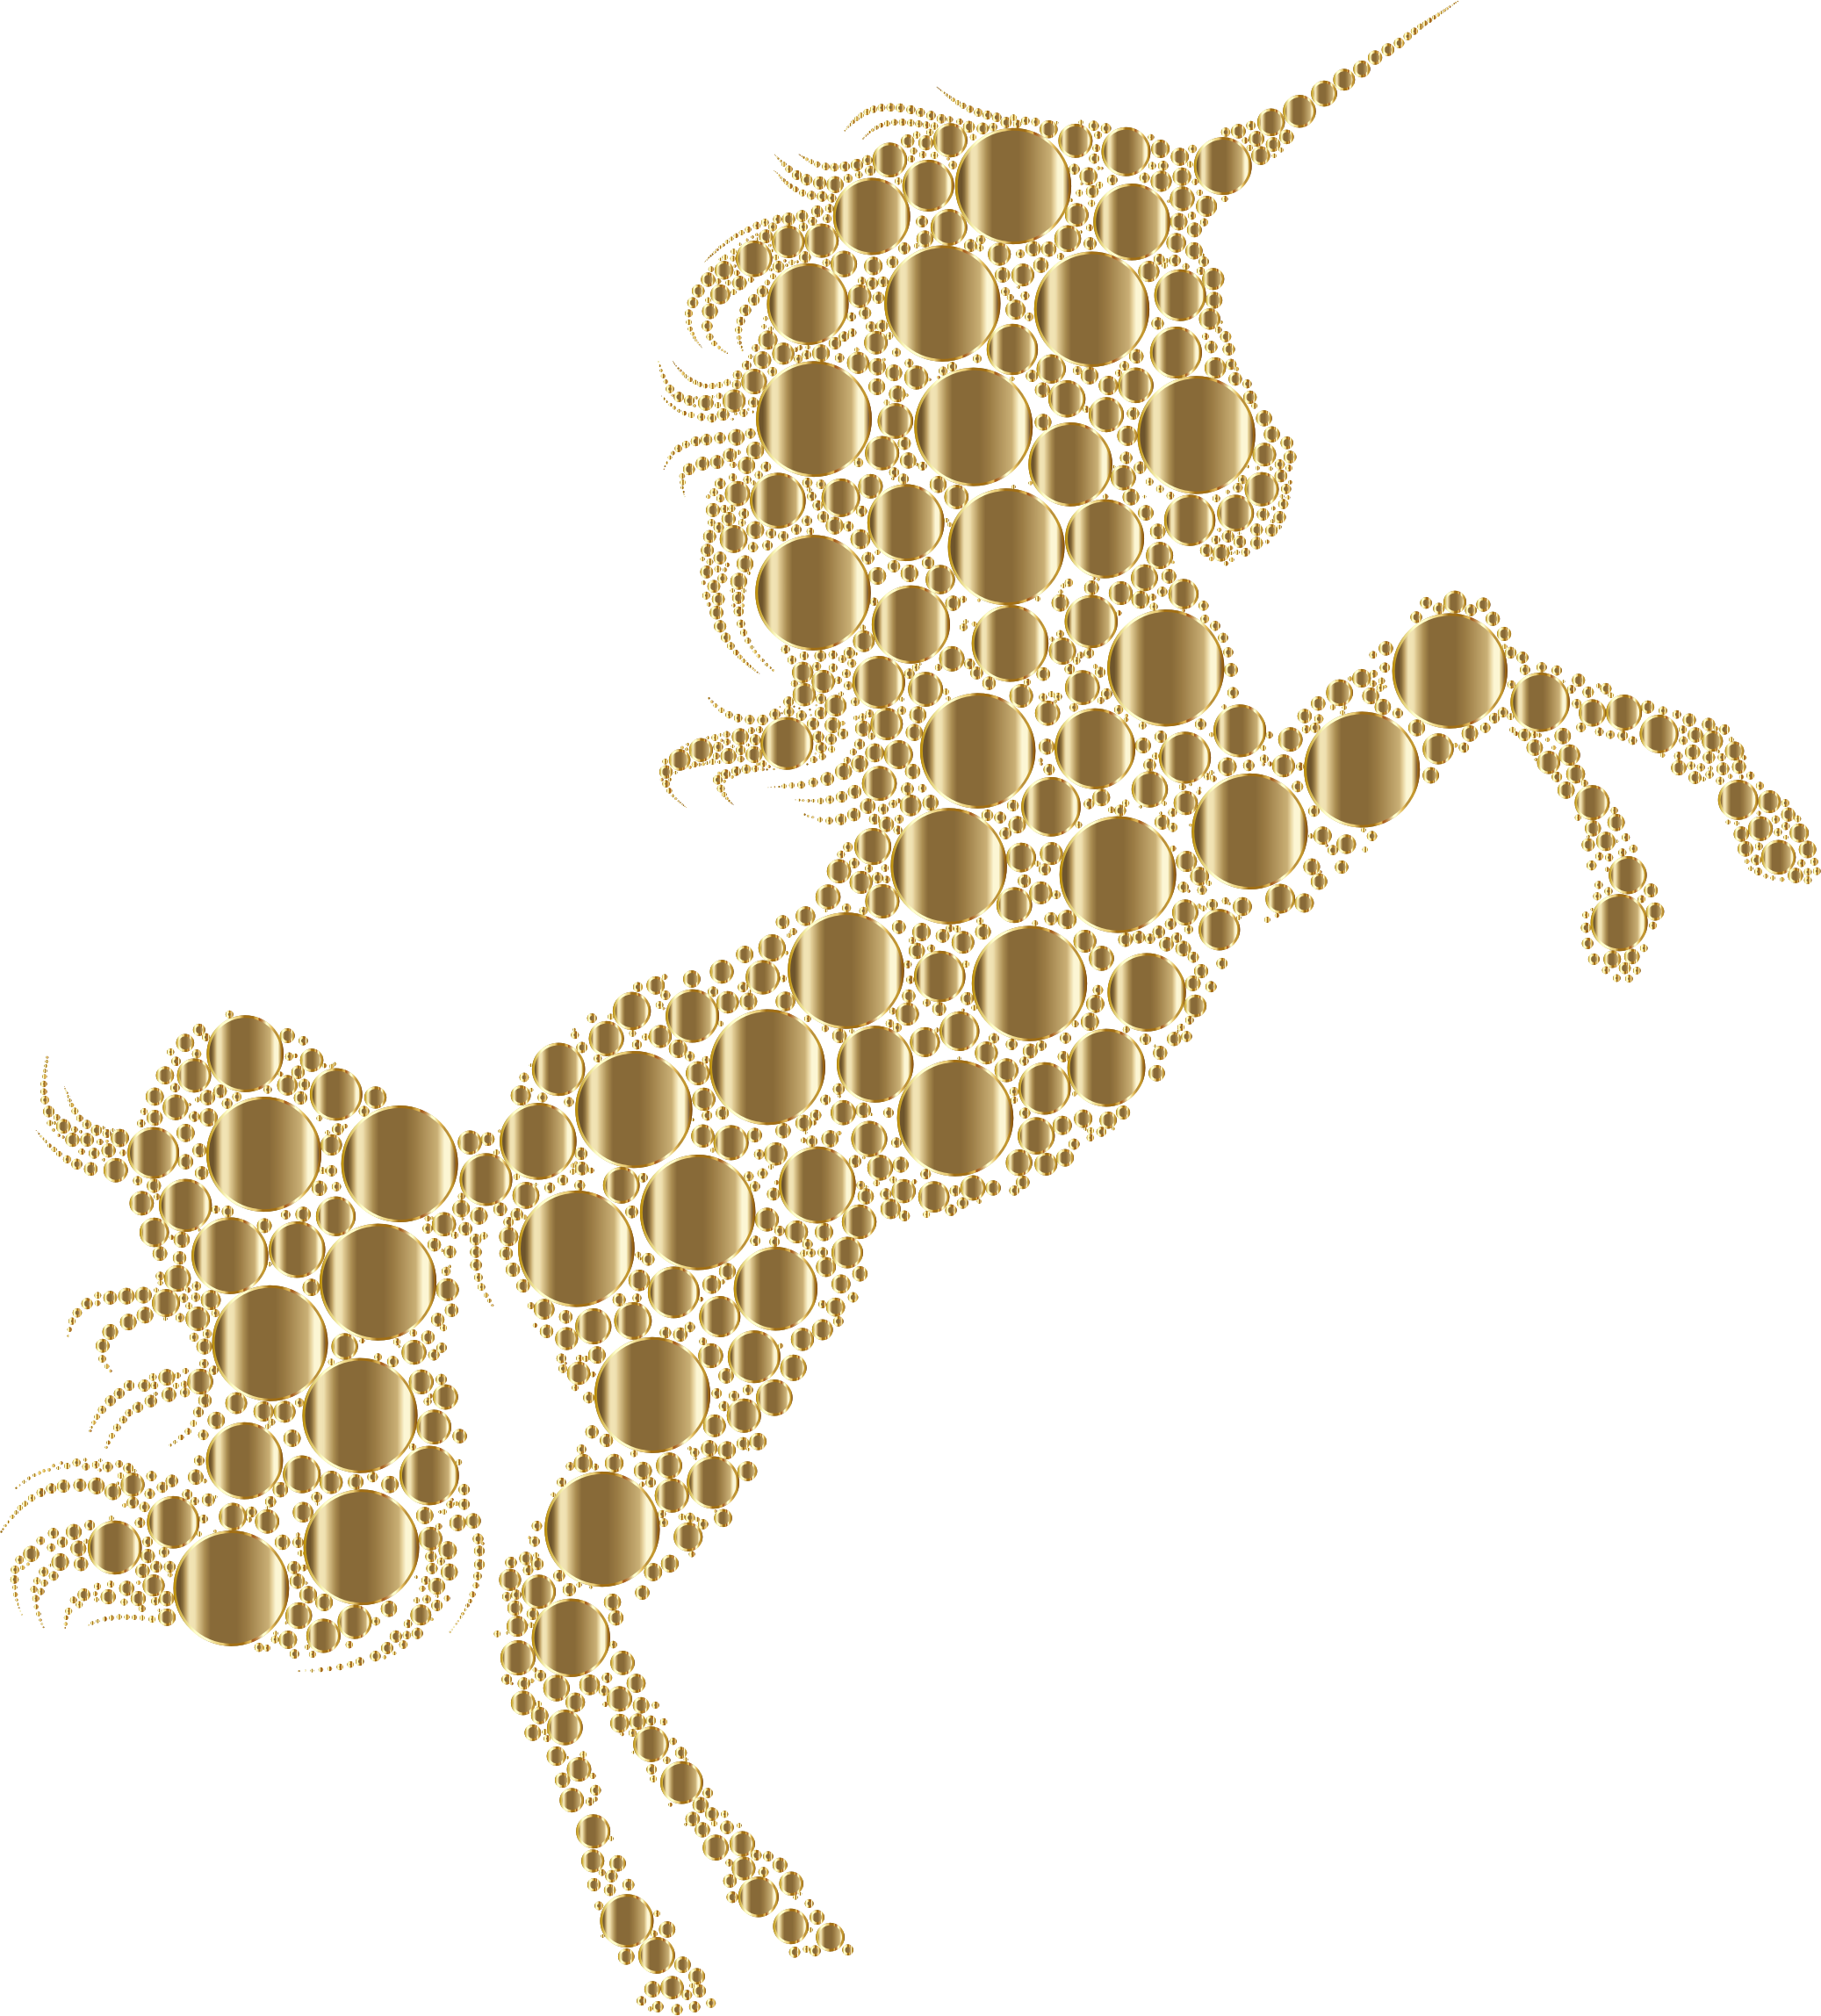 Gold silhouette circles no. Clipart unicorn yellow